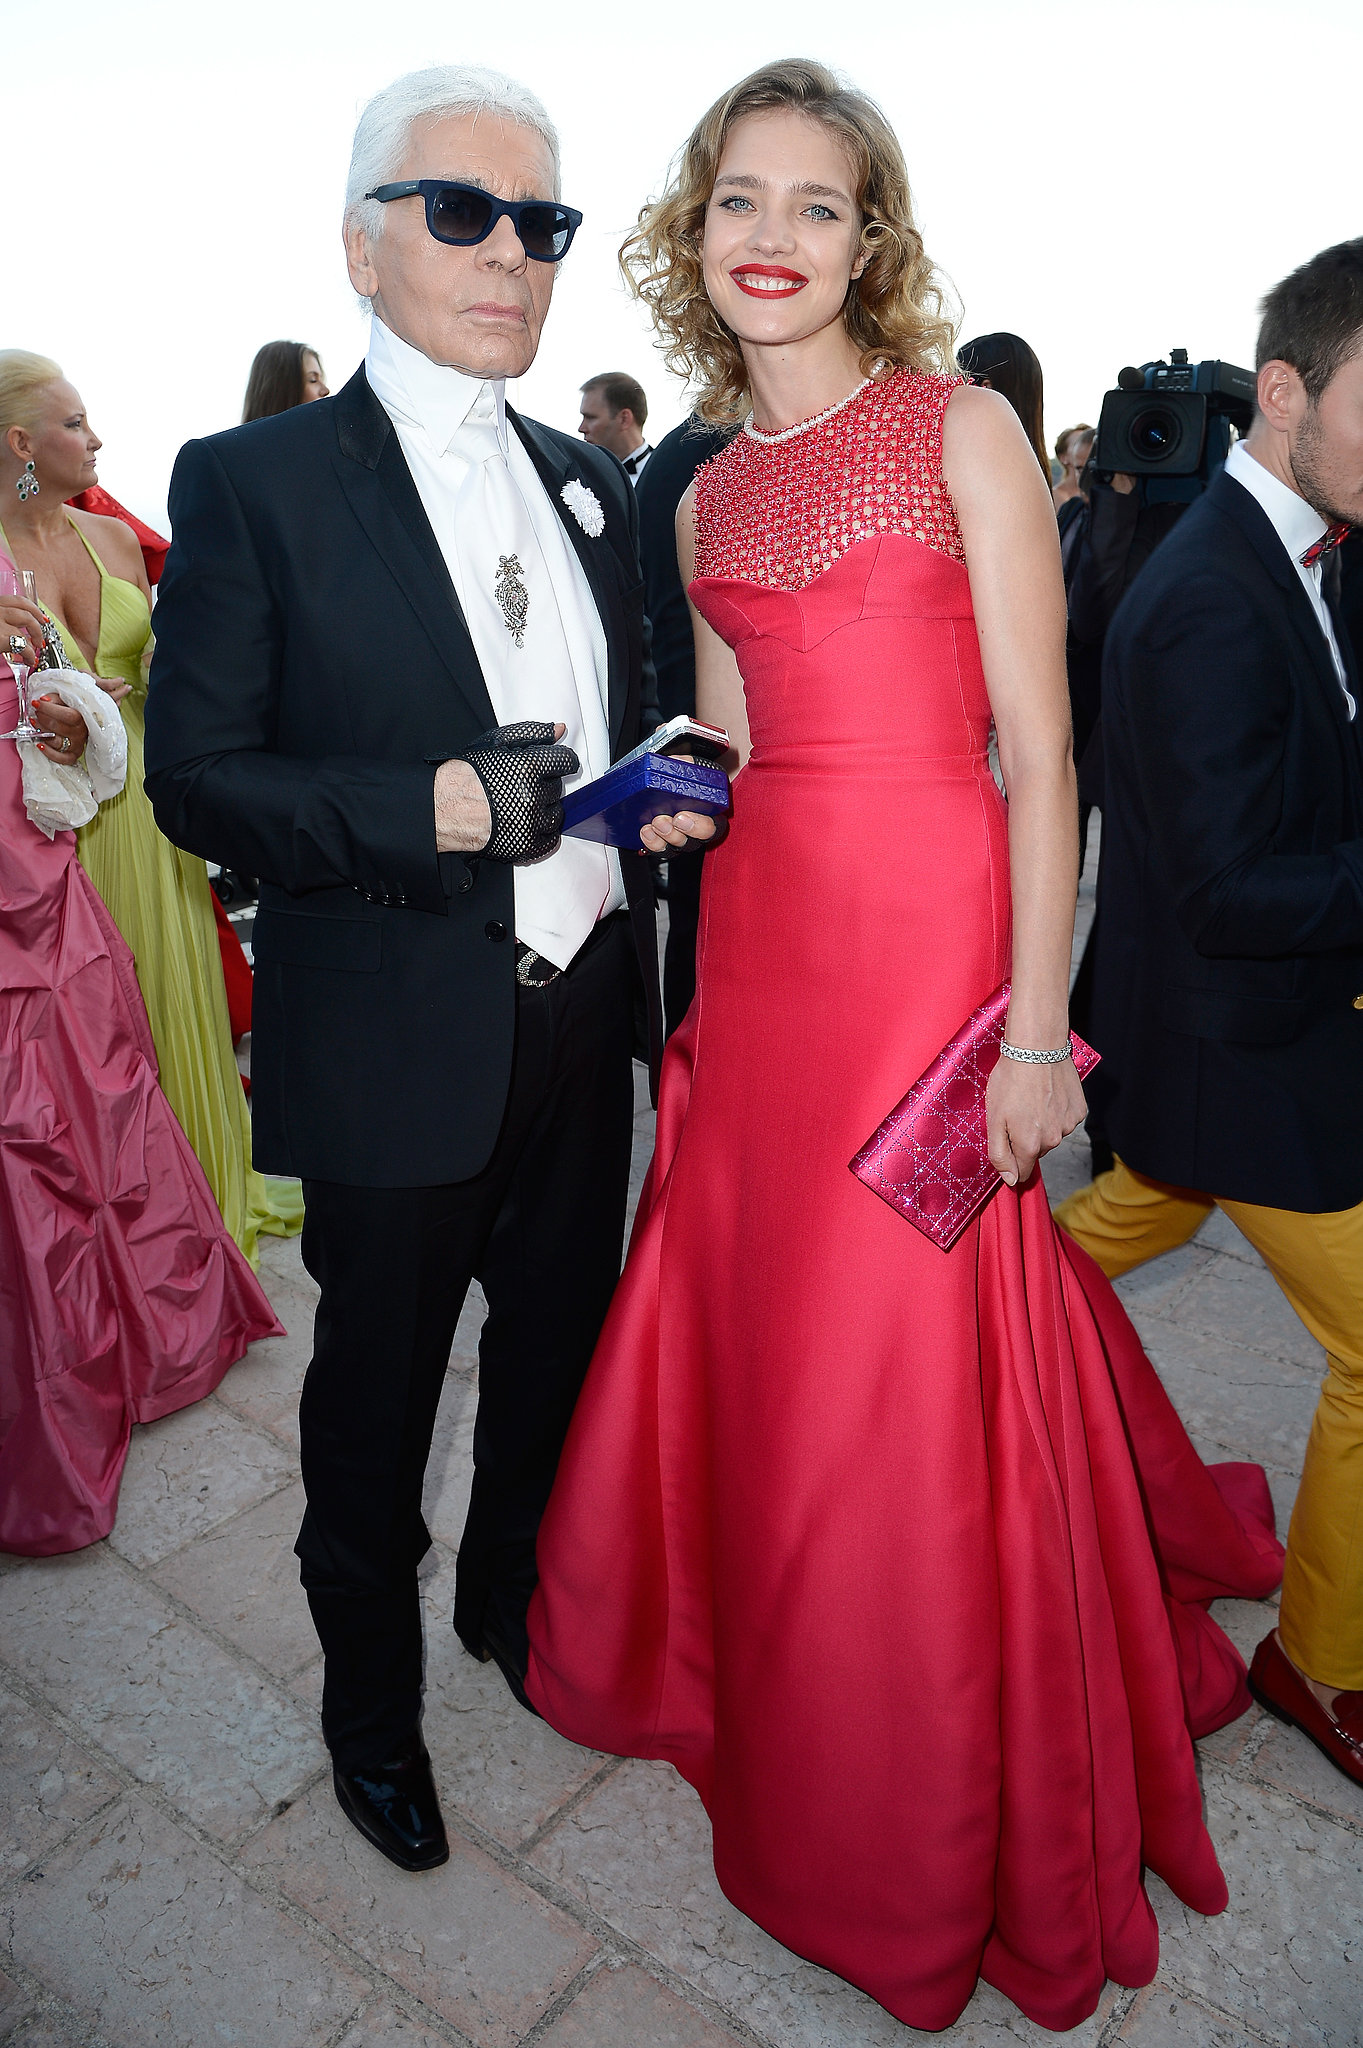 Natalia Vodianova hosted the Love Ball in red and joined guests including Karl Lagerfeld in benefiting The Naked Heart Foundation.